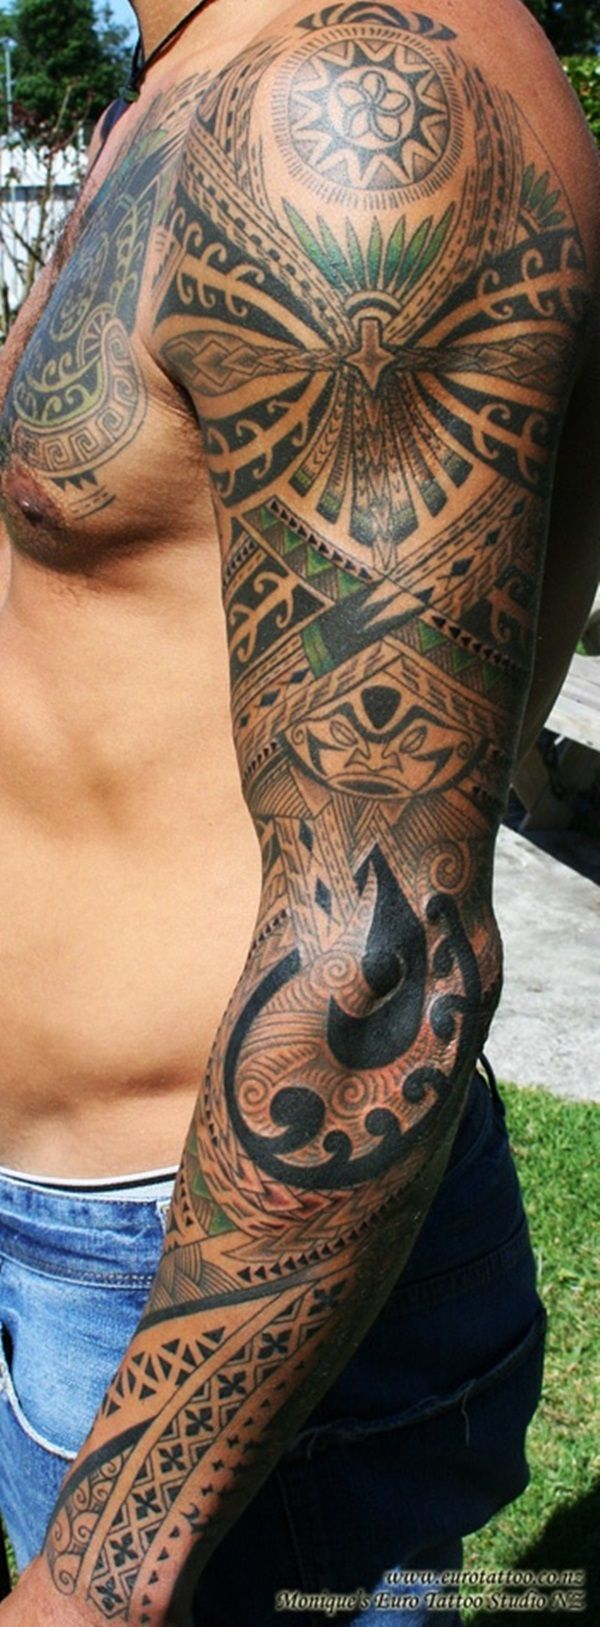 40 maori tattoo vorlagen und designs arm tattoos pinterest tattoo vorlagen maorie tattoo. Black Bedroom Furniture Sets. Home Design Ideas